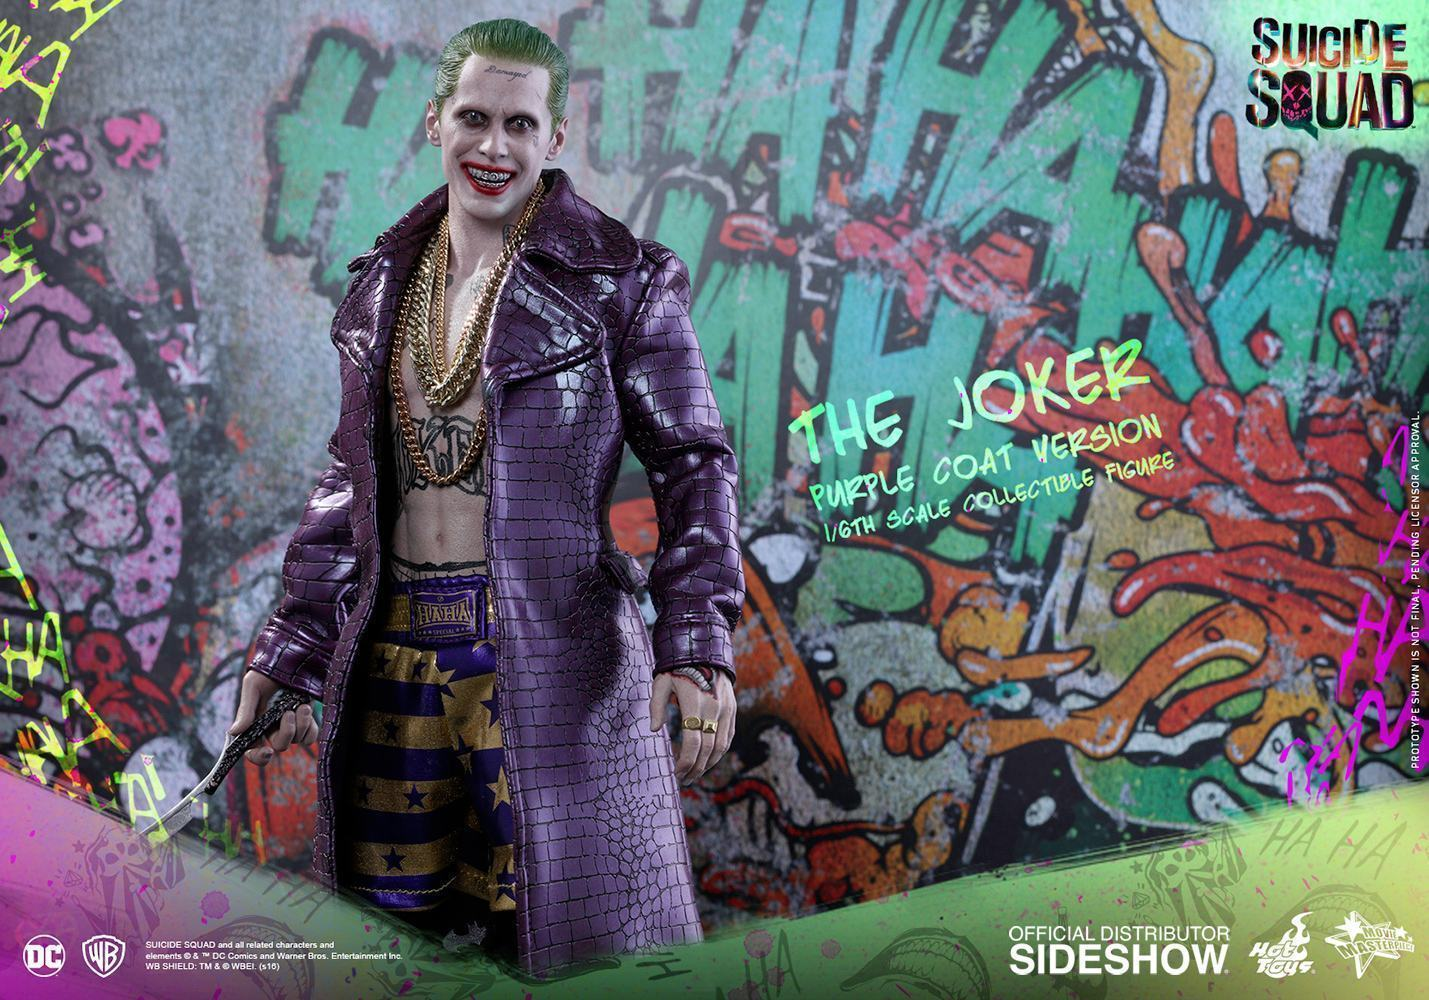 The-Joker-Purple-Coat-Ver-Suicide-Squad-Collectible-Figure-Hot-Toys-09